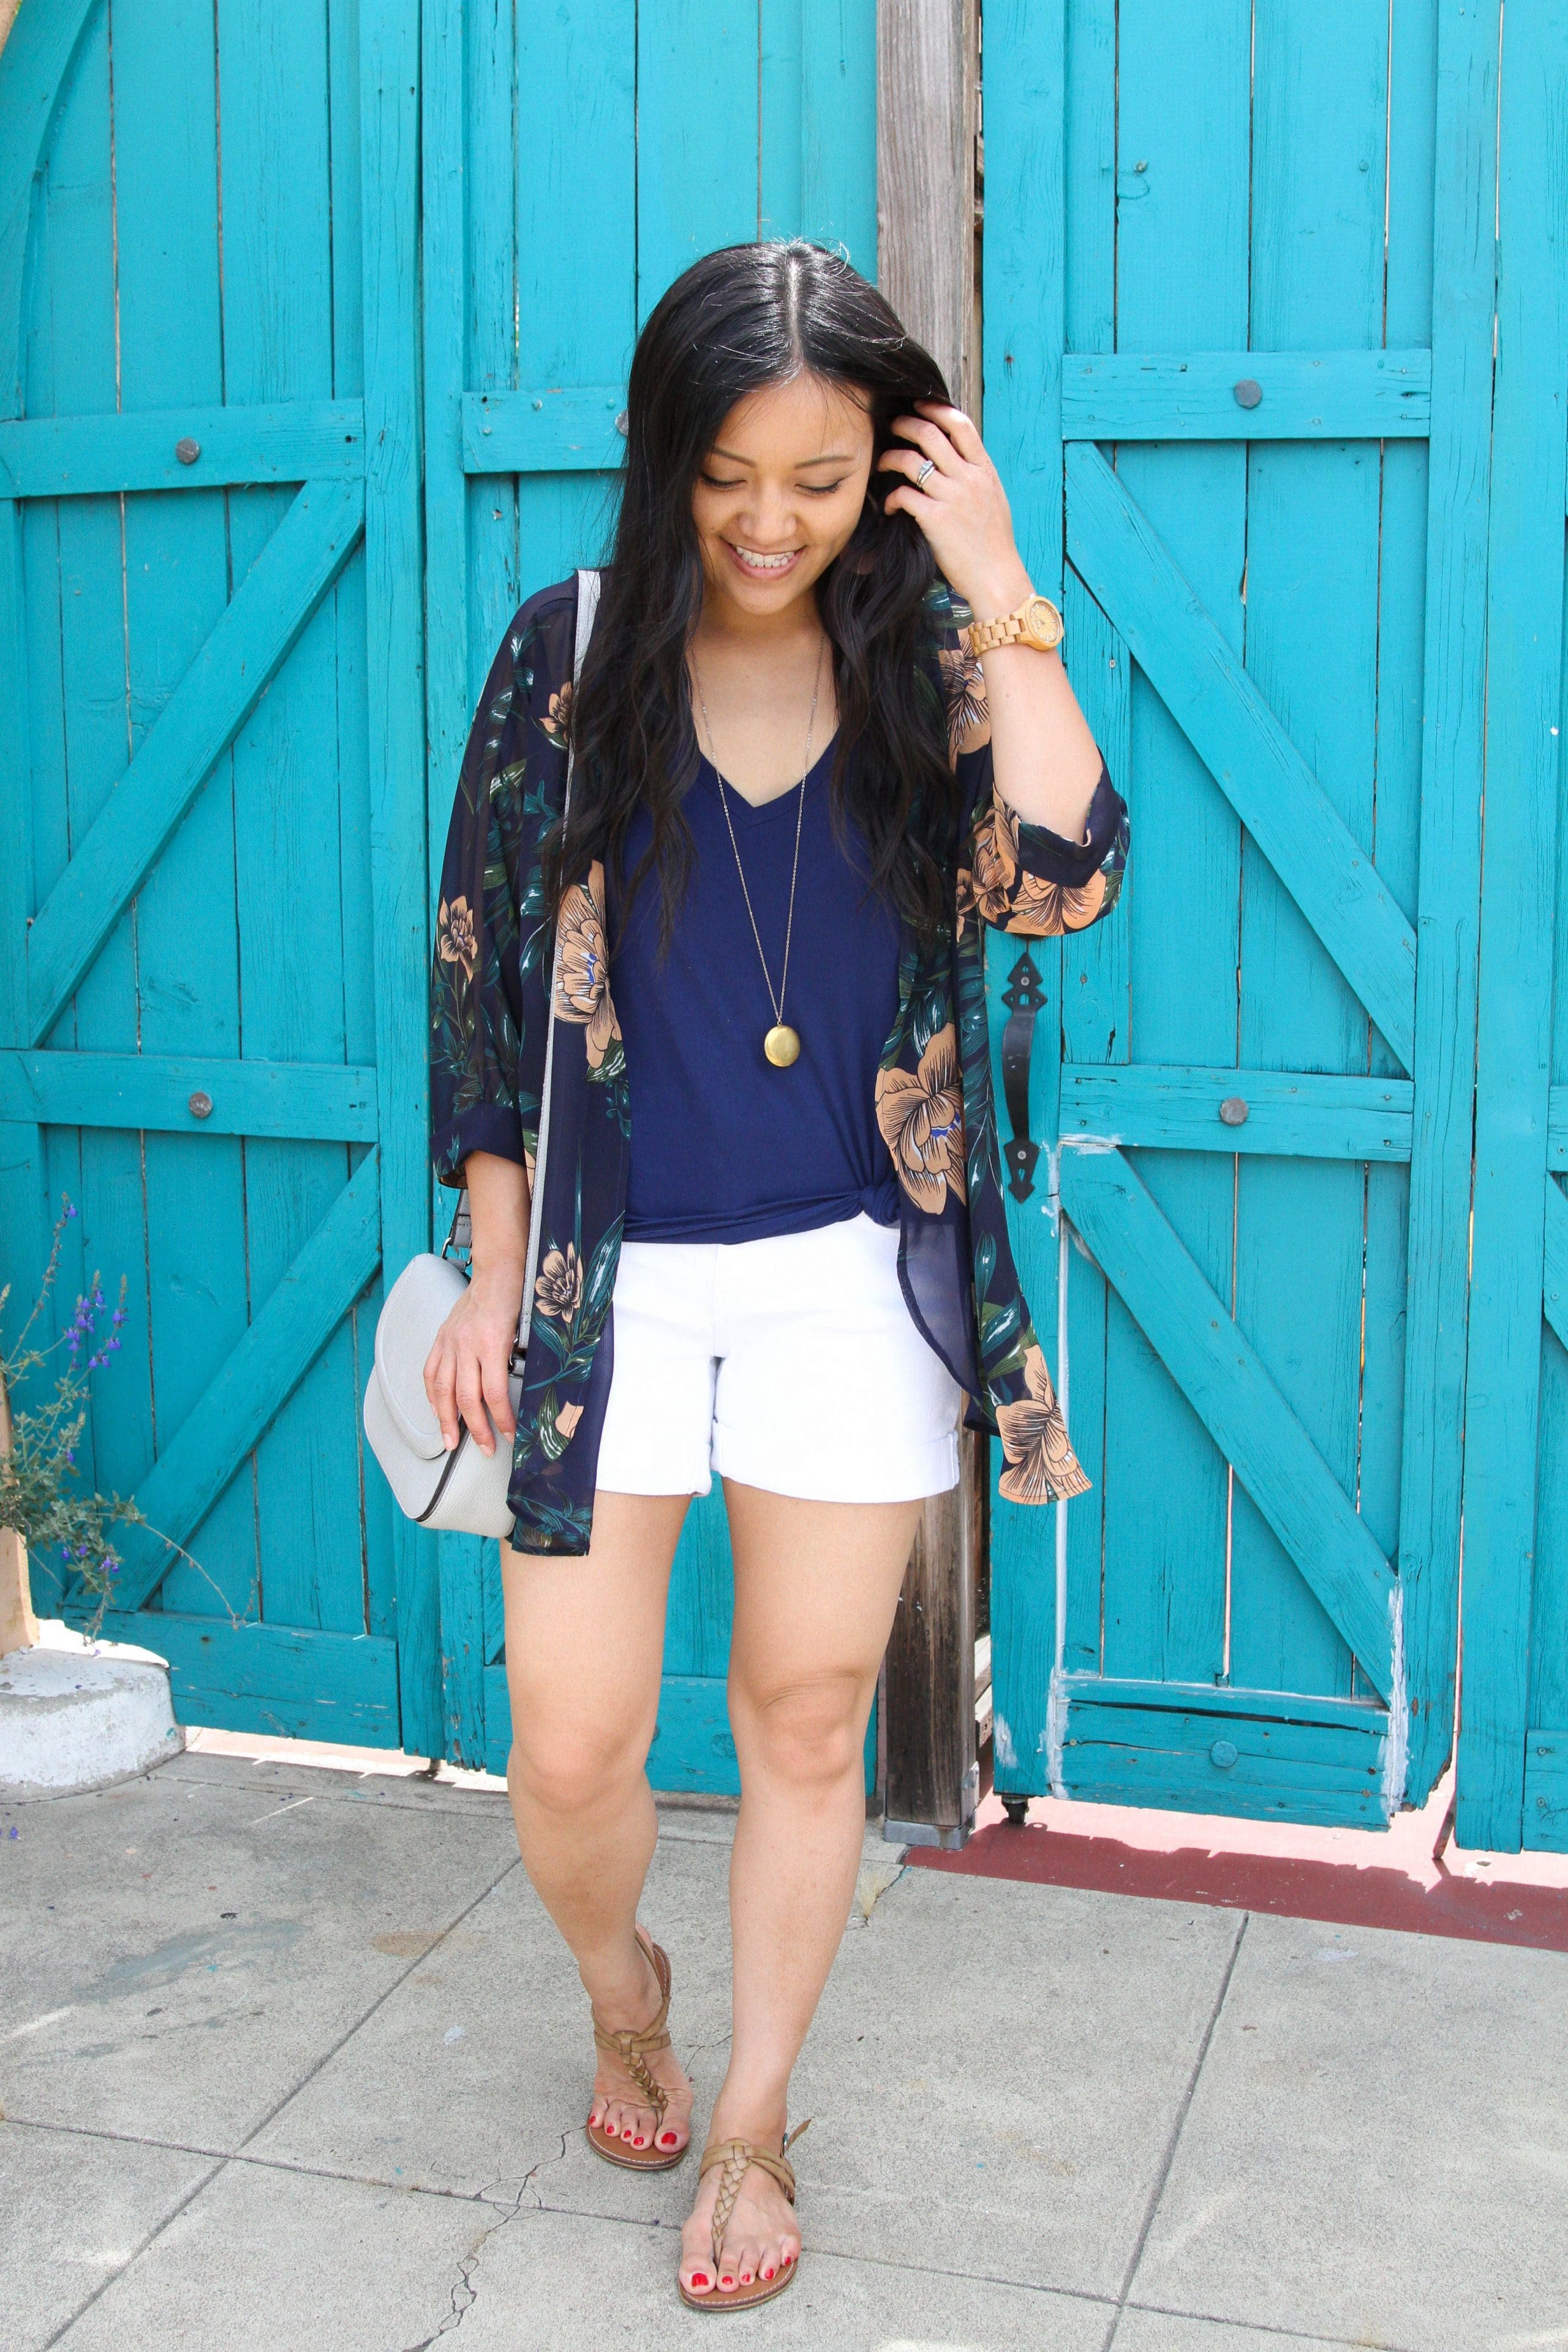 navy top + white shorts + navy floral wrap + long pendant necklace + tan sandals